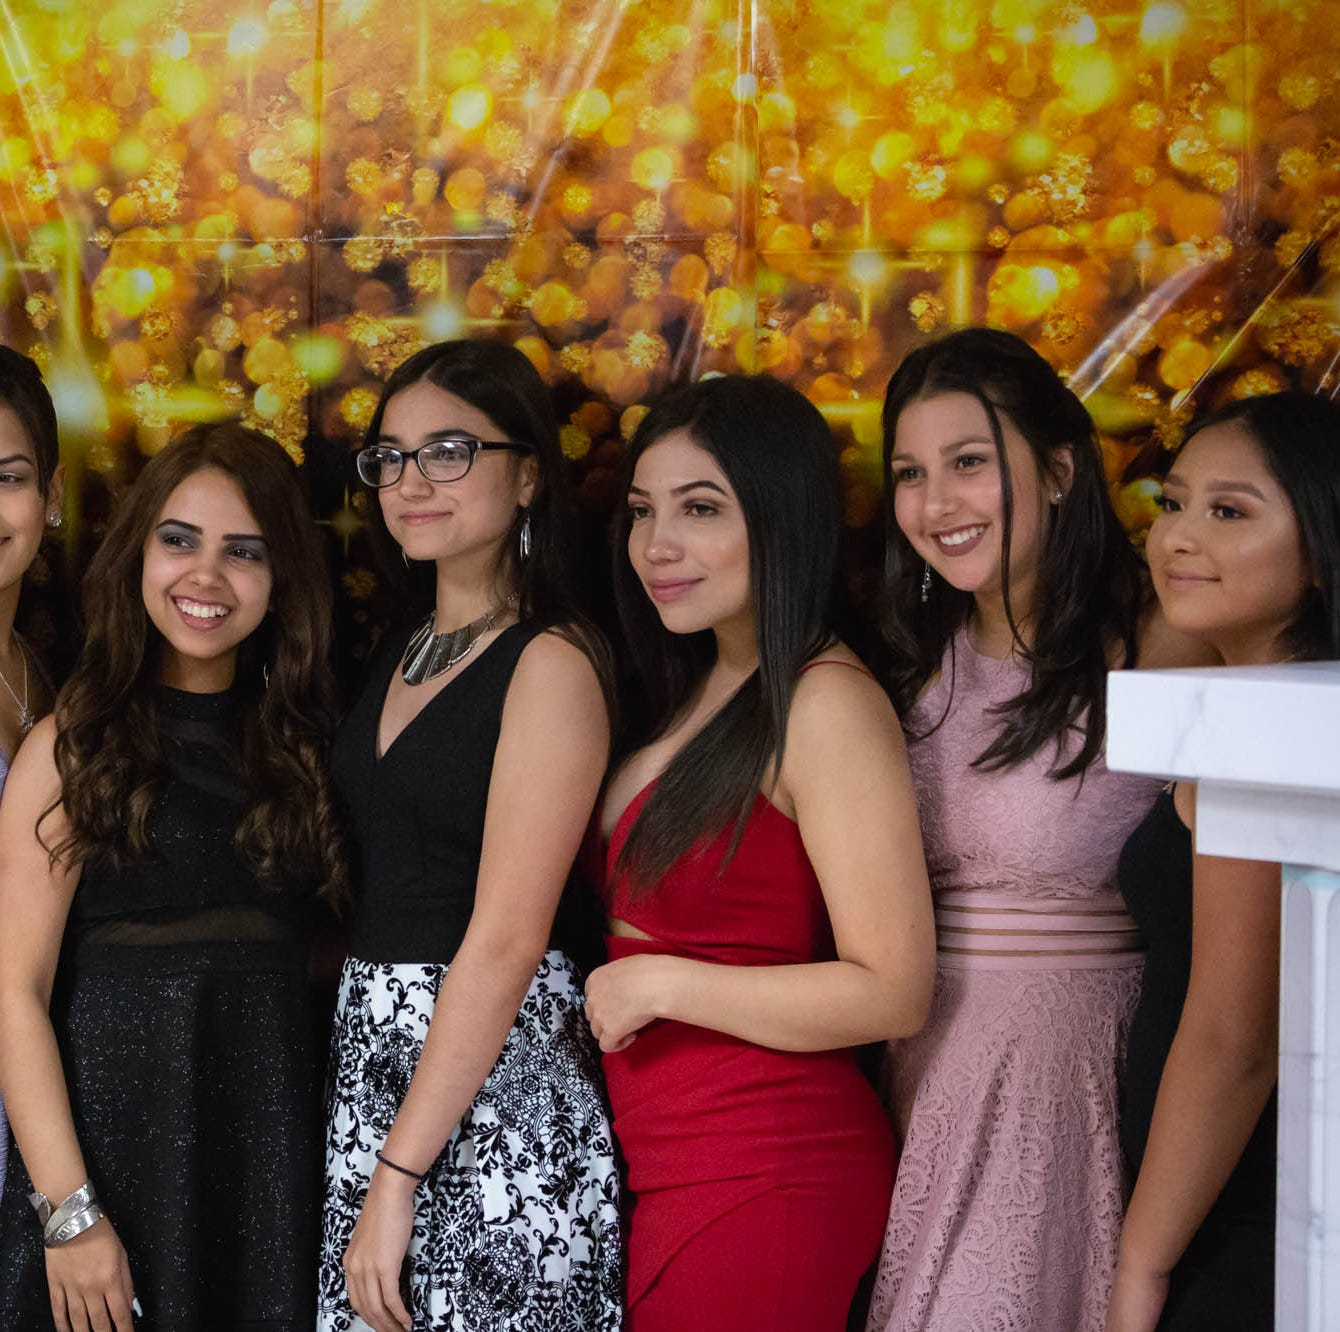 Delaware high school homecoming photos 2018: the students, the fashion